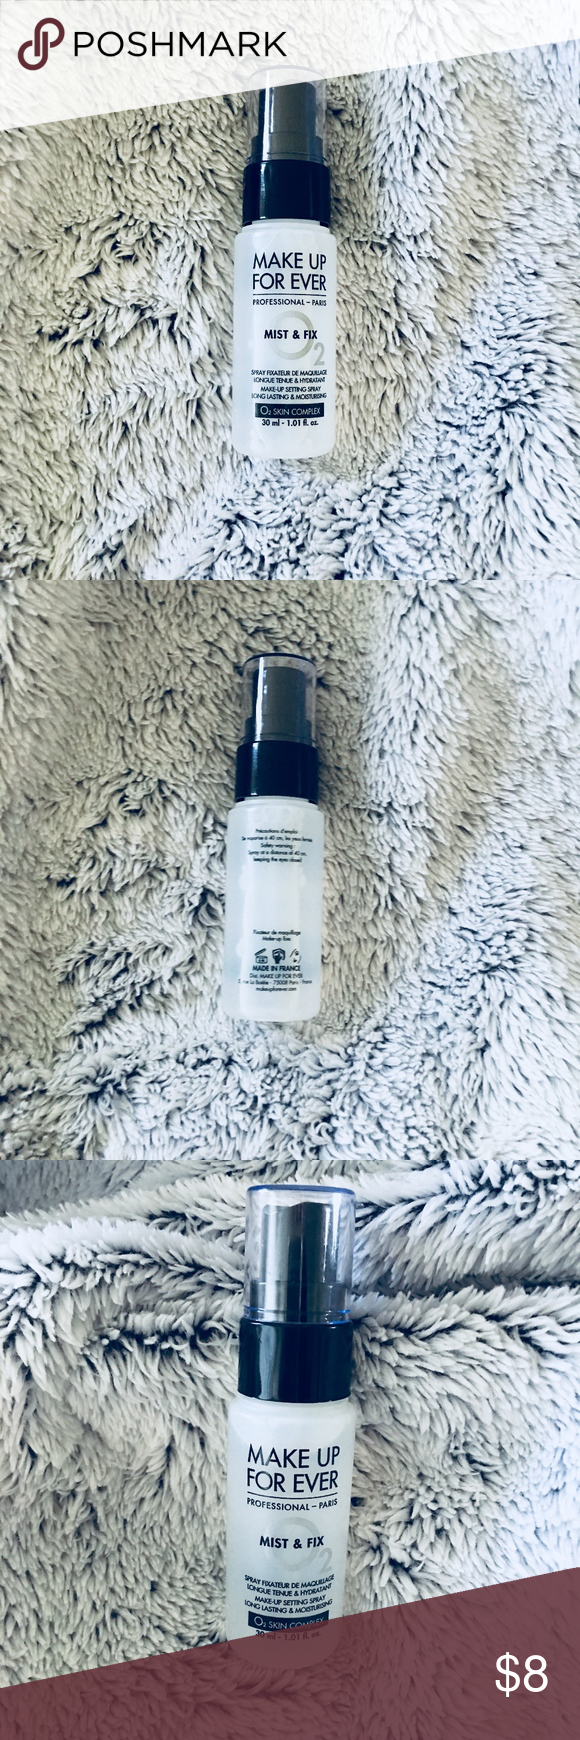 MAKE UP FOR EVER Mist & Fix Setting Spray Mini A universal